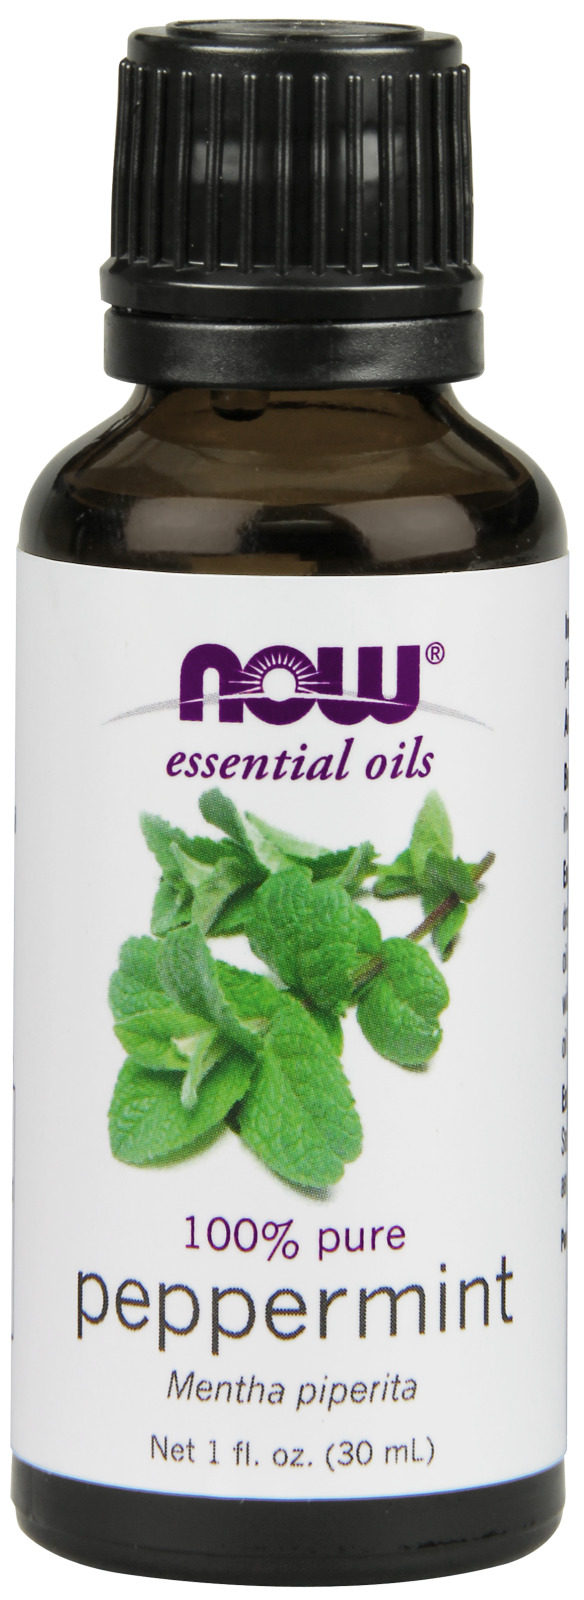 Peppermint Oil 1 fl oz (30 ml) by NOW